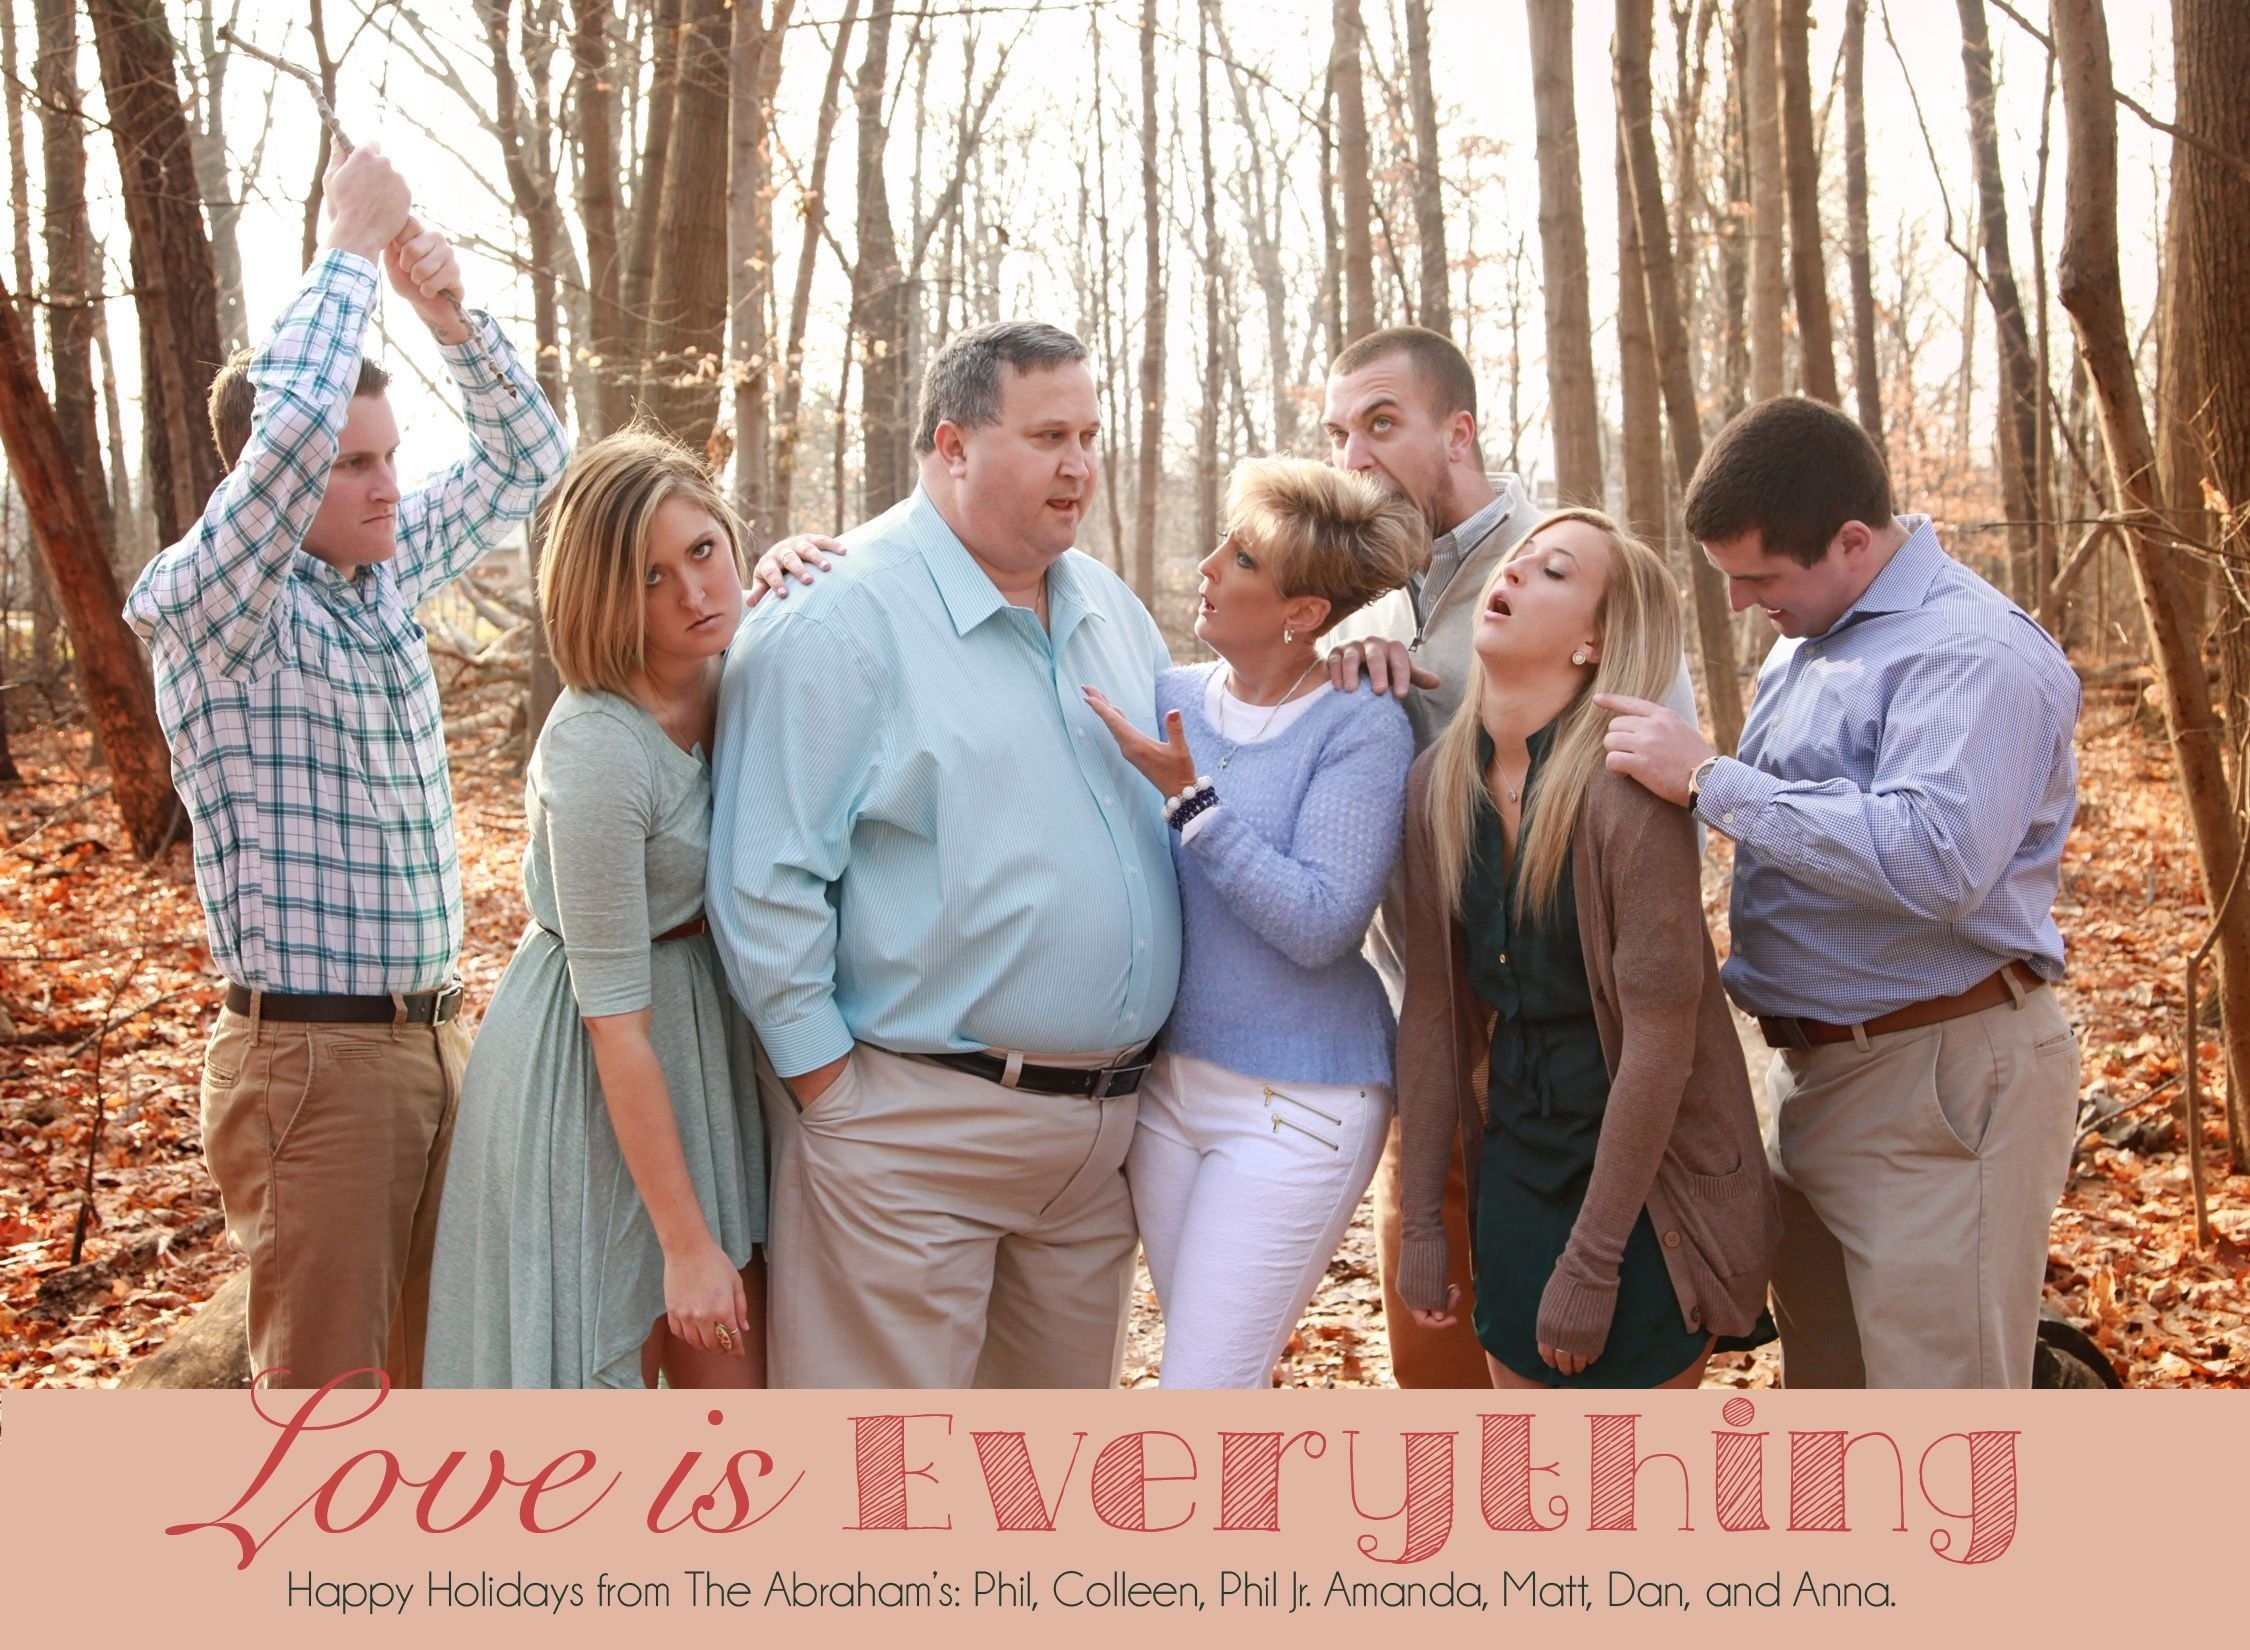 10 Perfect Funny Christmas Card Picture Ideas 15 funny christmas cards youll wish your family thought of first 2 2020